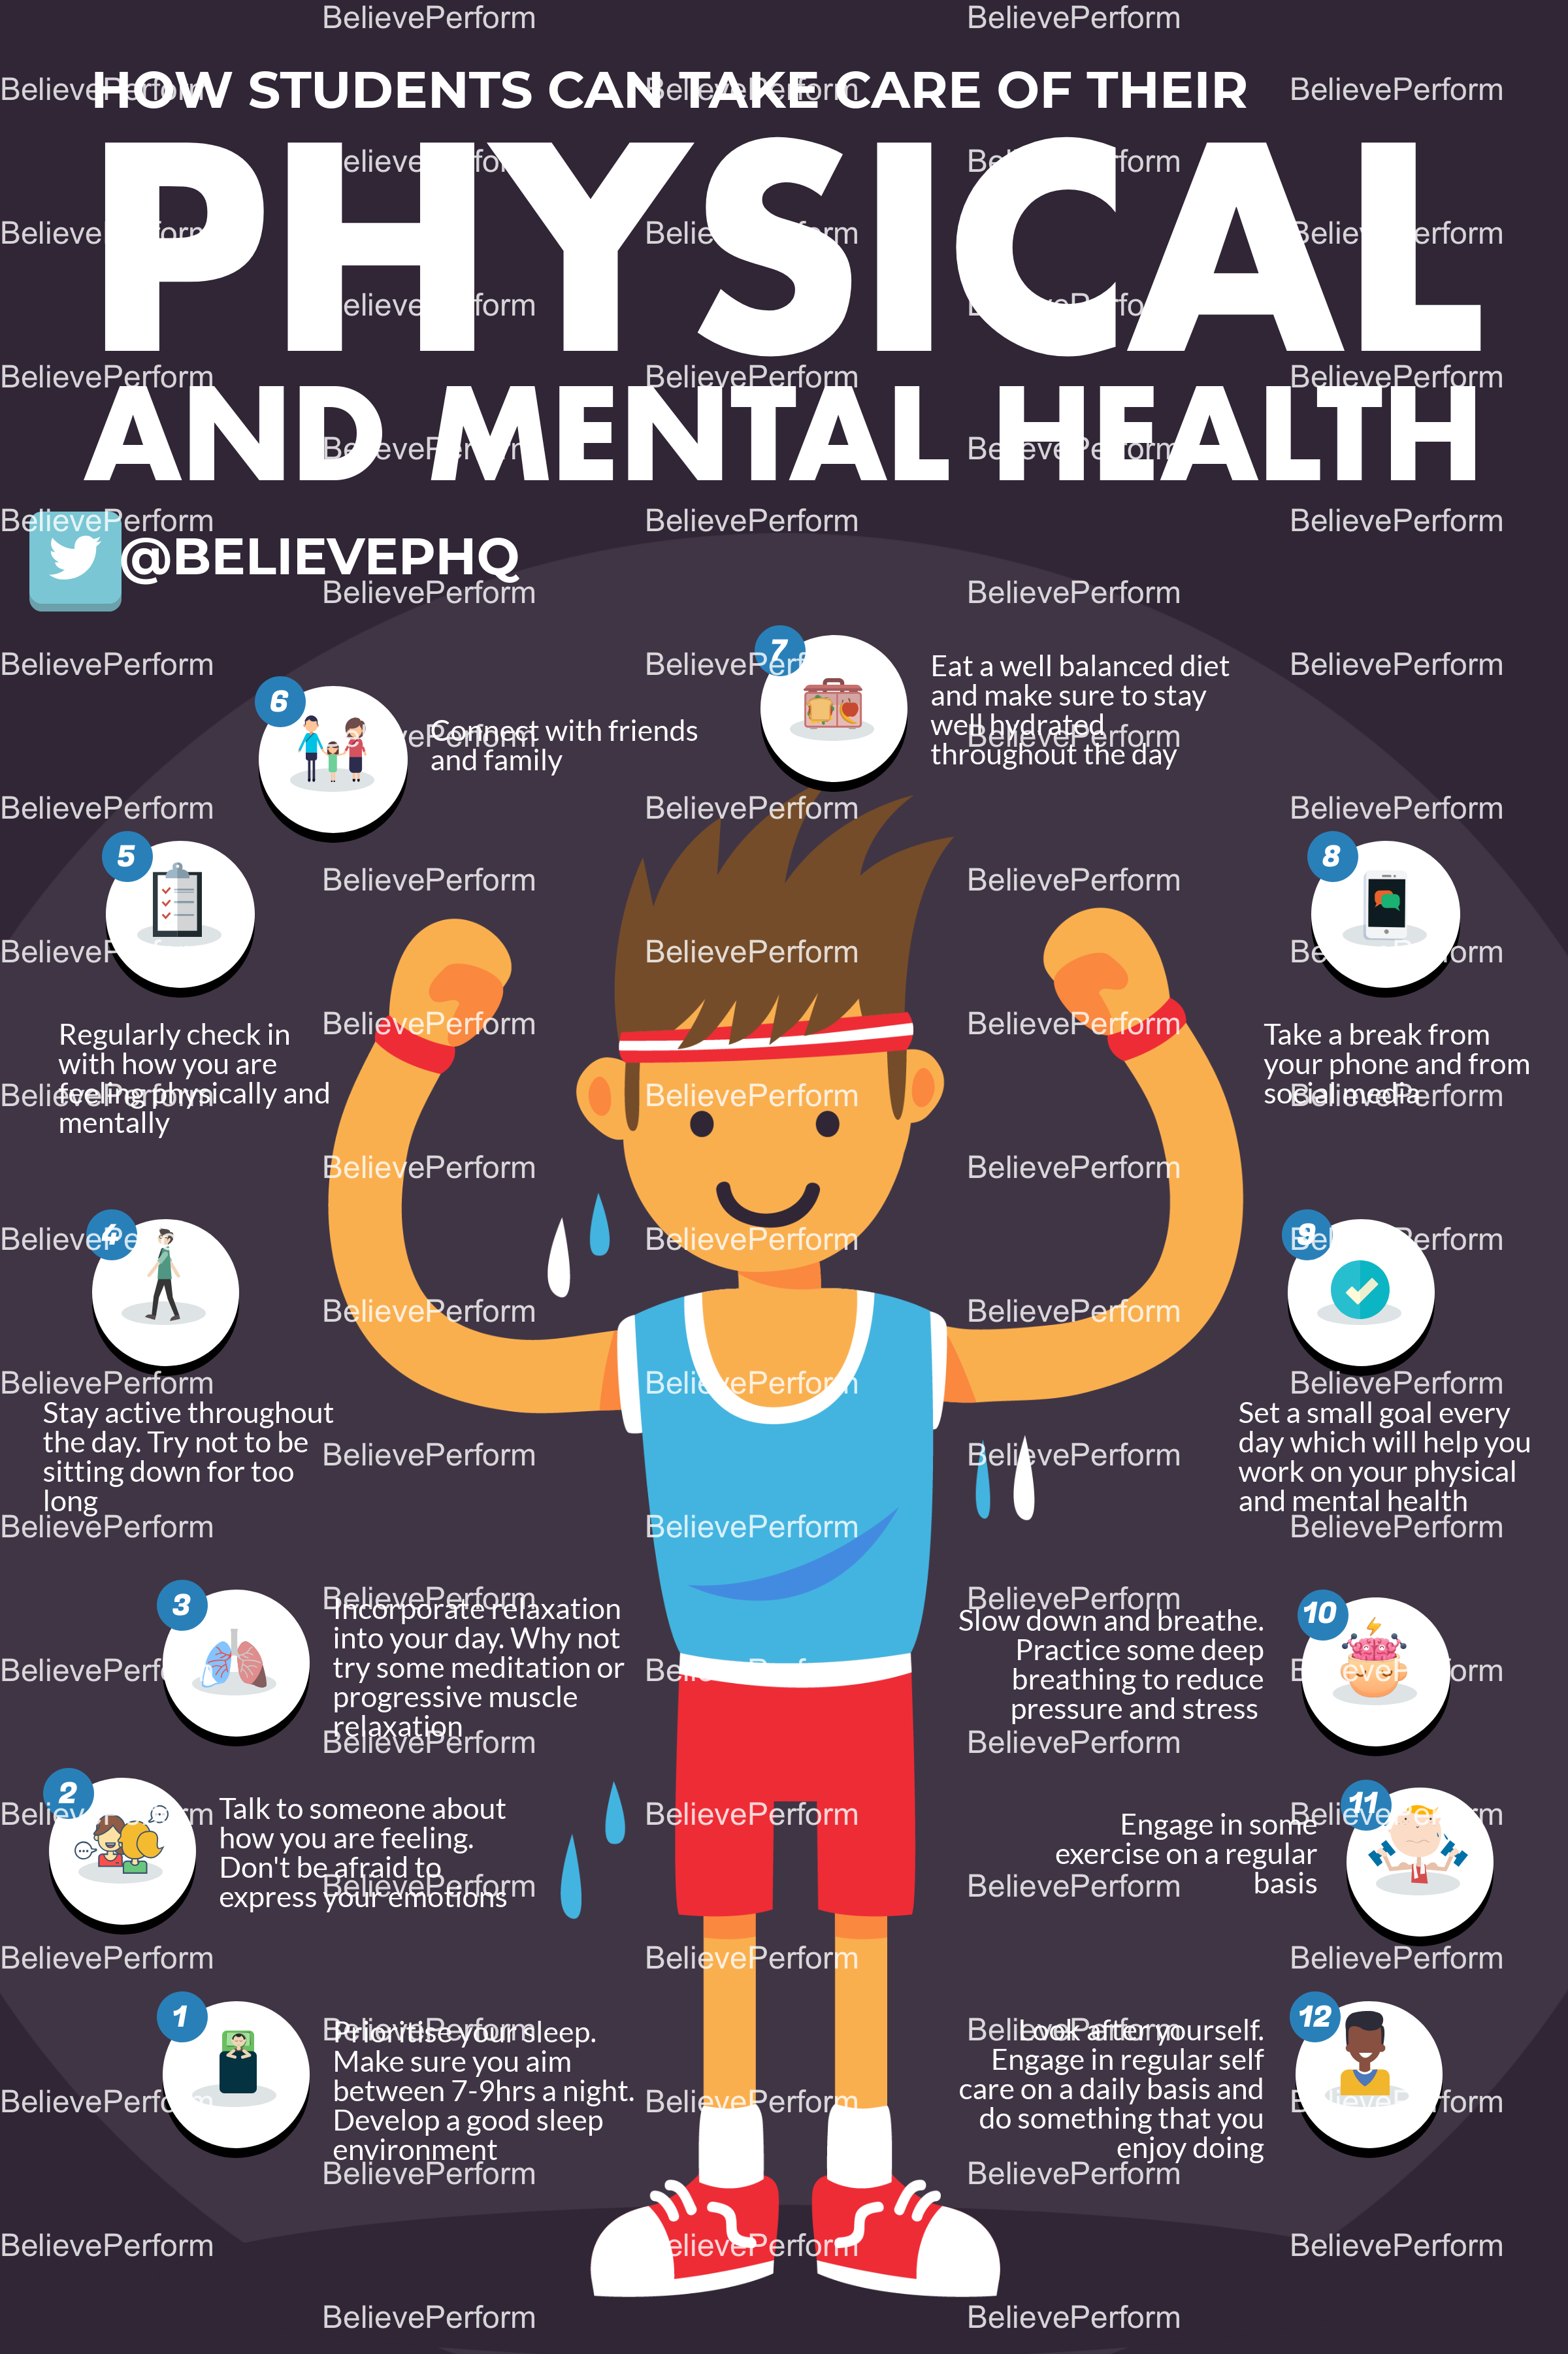 How students can take care of their physical and mental